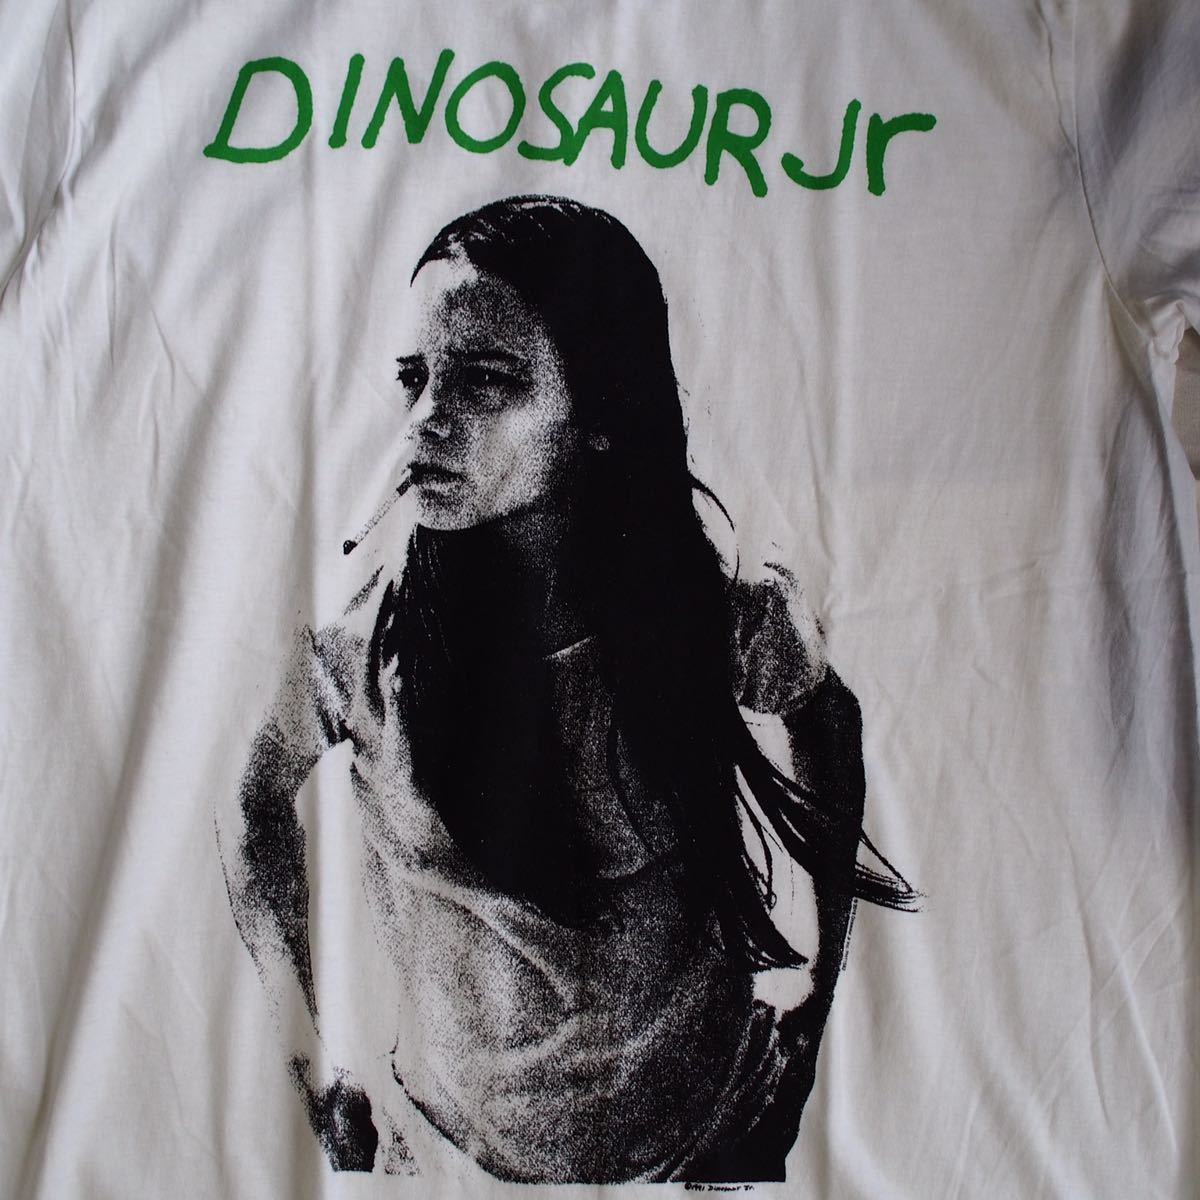 Official [Dinosaur Jr.]L ダイナソージュニア Tシャツ バンド Nirvana Blur Sonic Youth oasis joy division Stone Roses The Cure_画像5